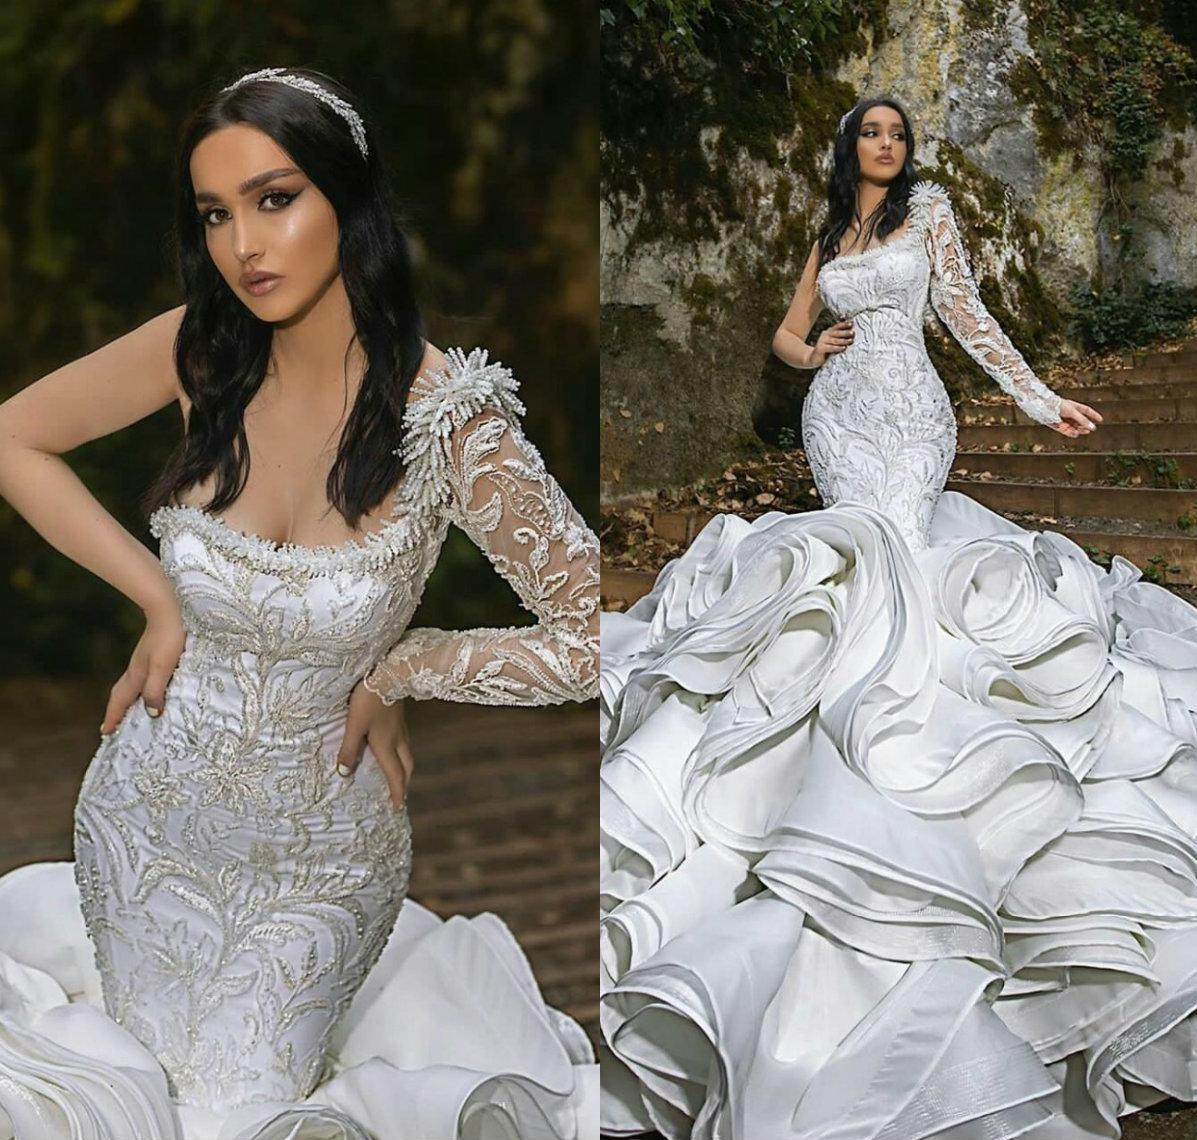 2021 Amazing Saudi Arabic Mermaid Bridal Gowns Long Sleeves Major Beading One Shoulder Church Wedding Dresses Ruffles Court Train Lace Vestidos Dubai Arabia AL8909